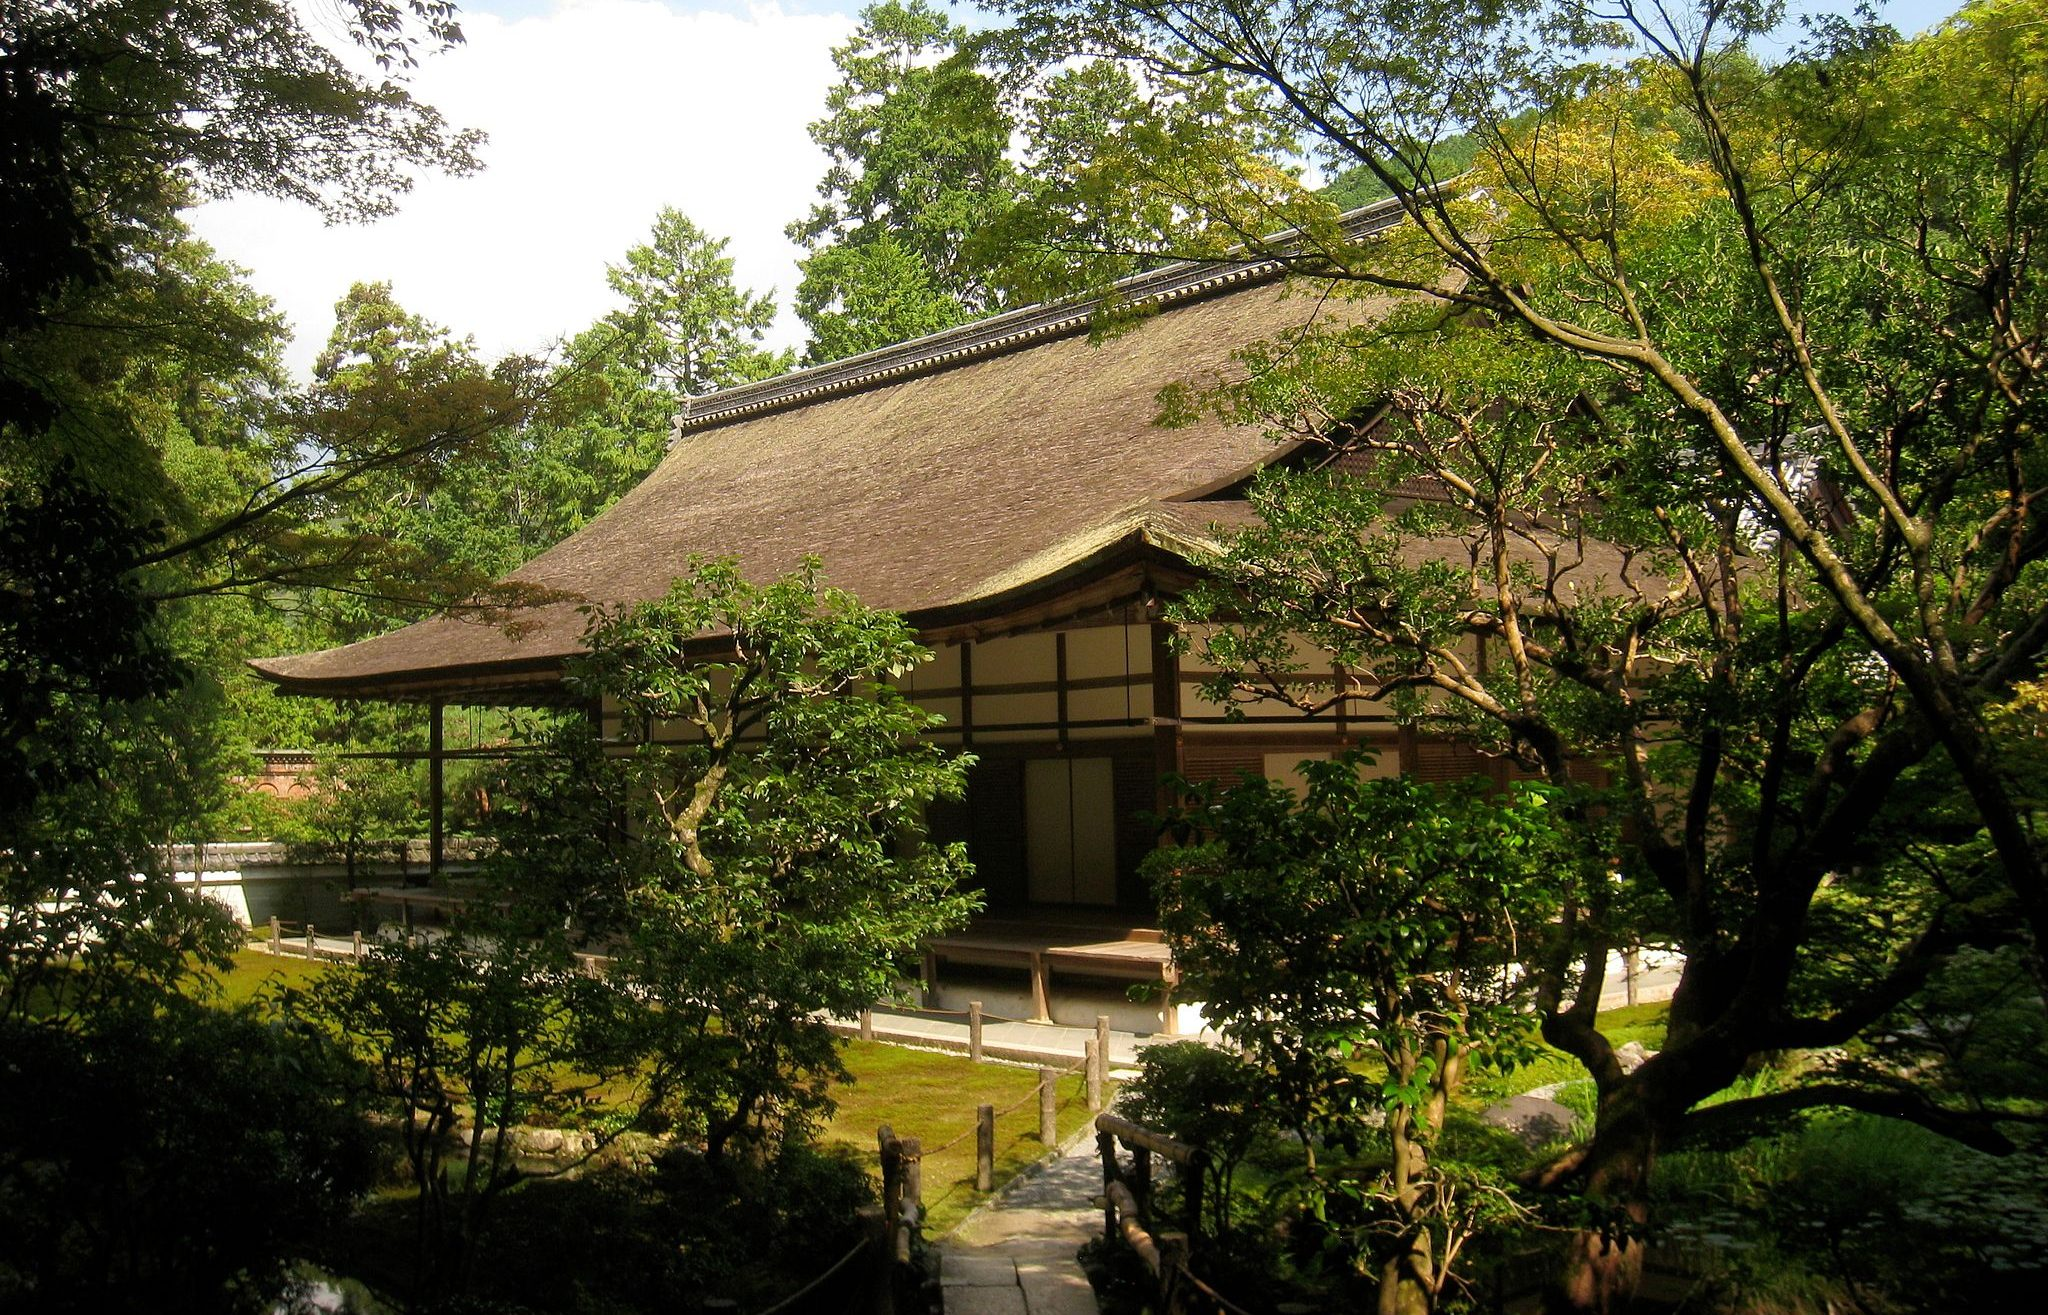 View at Nanzen-in temple. Credit: Daderot. Public Domain.